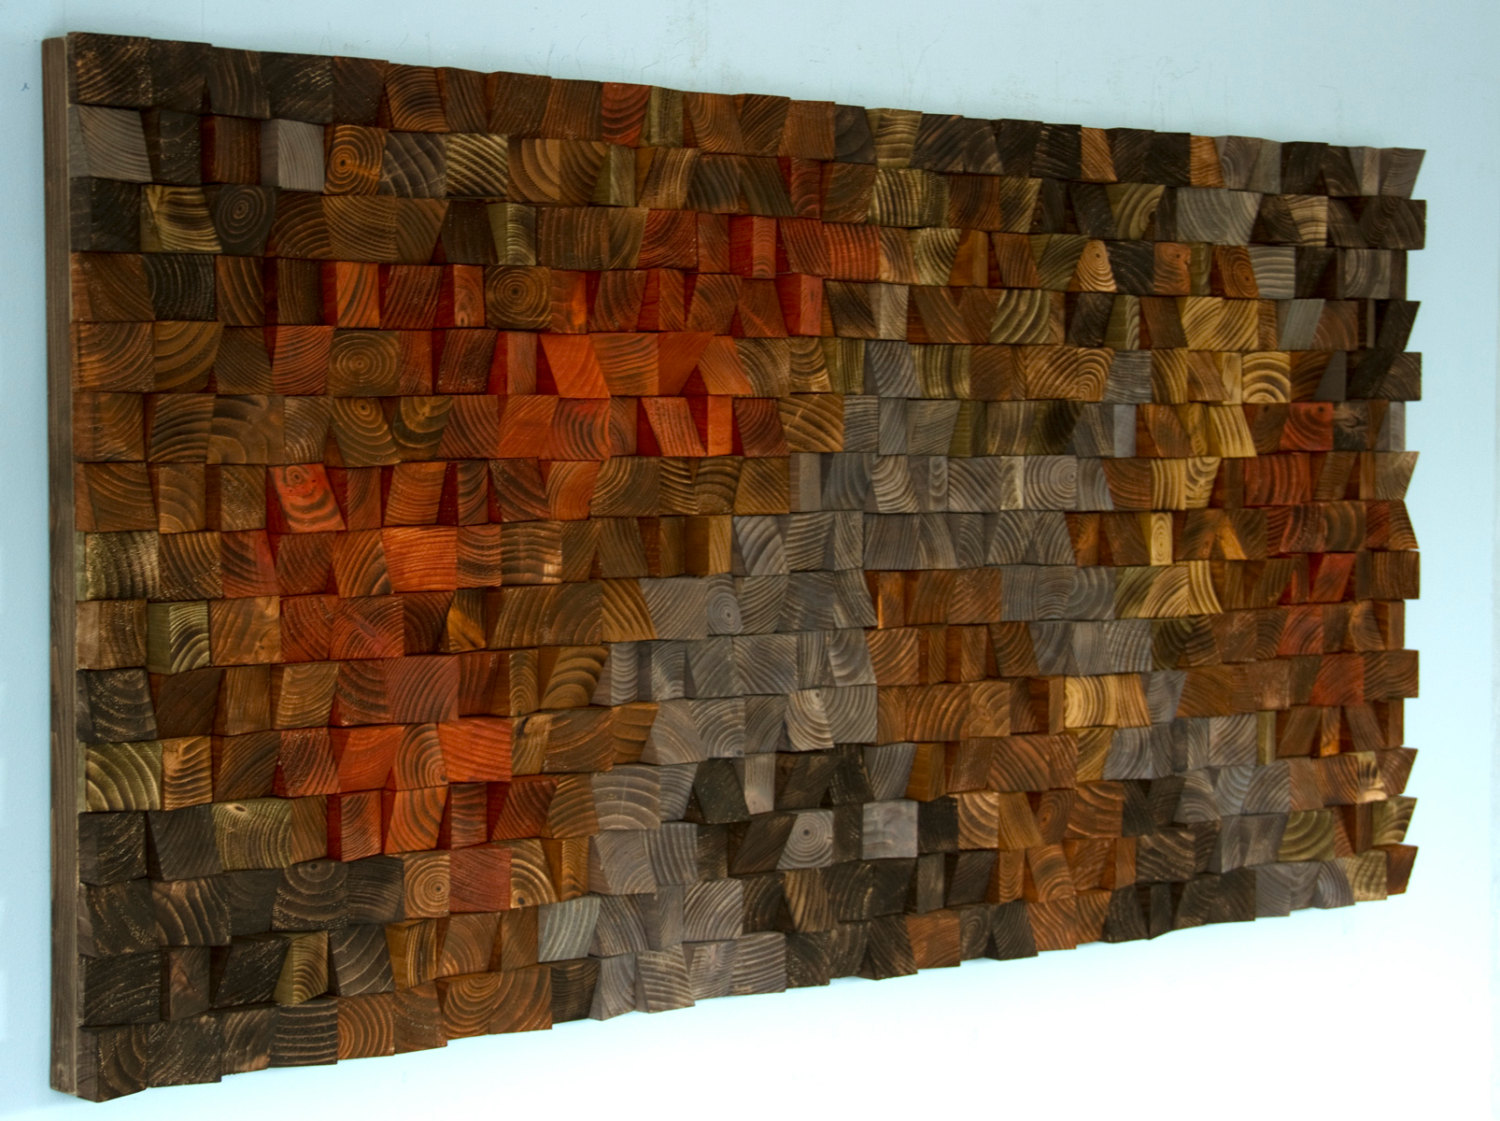 Rustic Wood Art, wood wall sculpture, abstract painting on